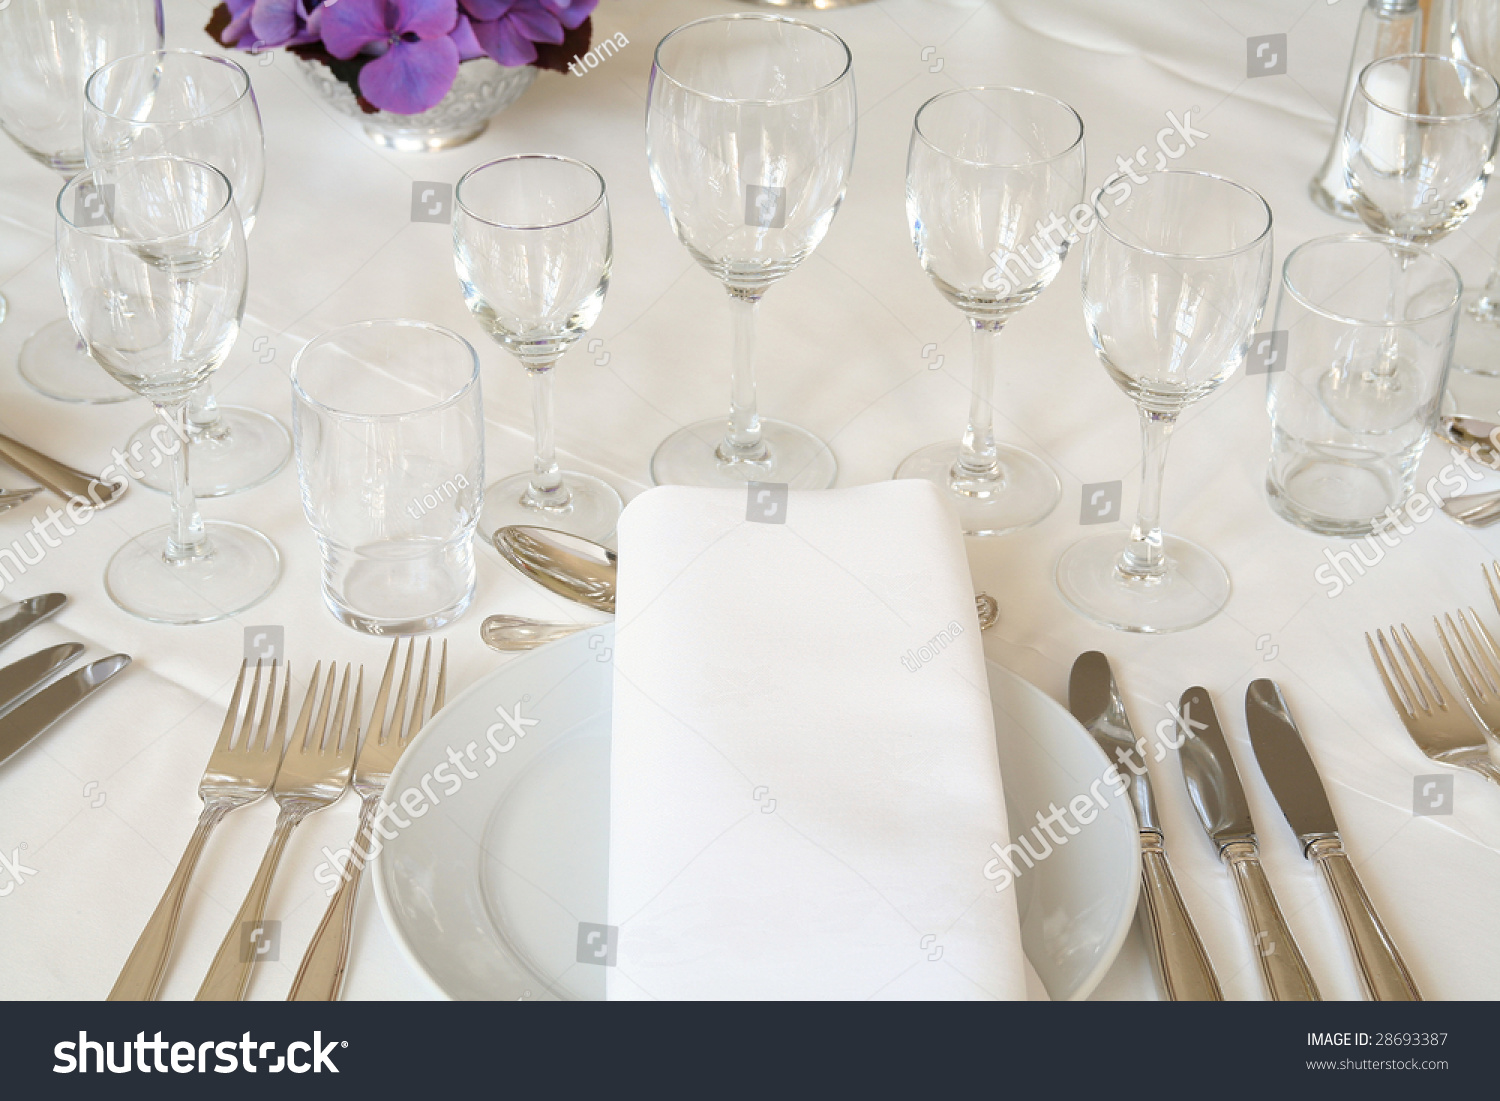 Table Setting For Fine Dining Or Party. Cutlery And Plate In Restaurant Set Up For Wedding Celebration Stock Photo 28693387 : Shutterstock